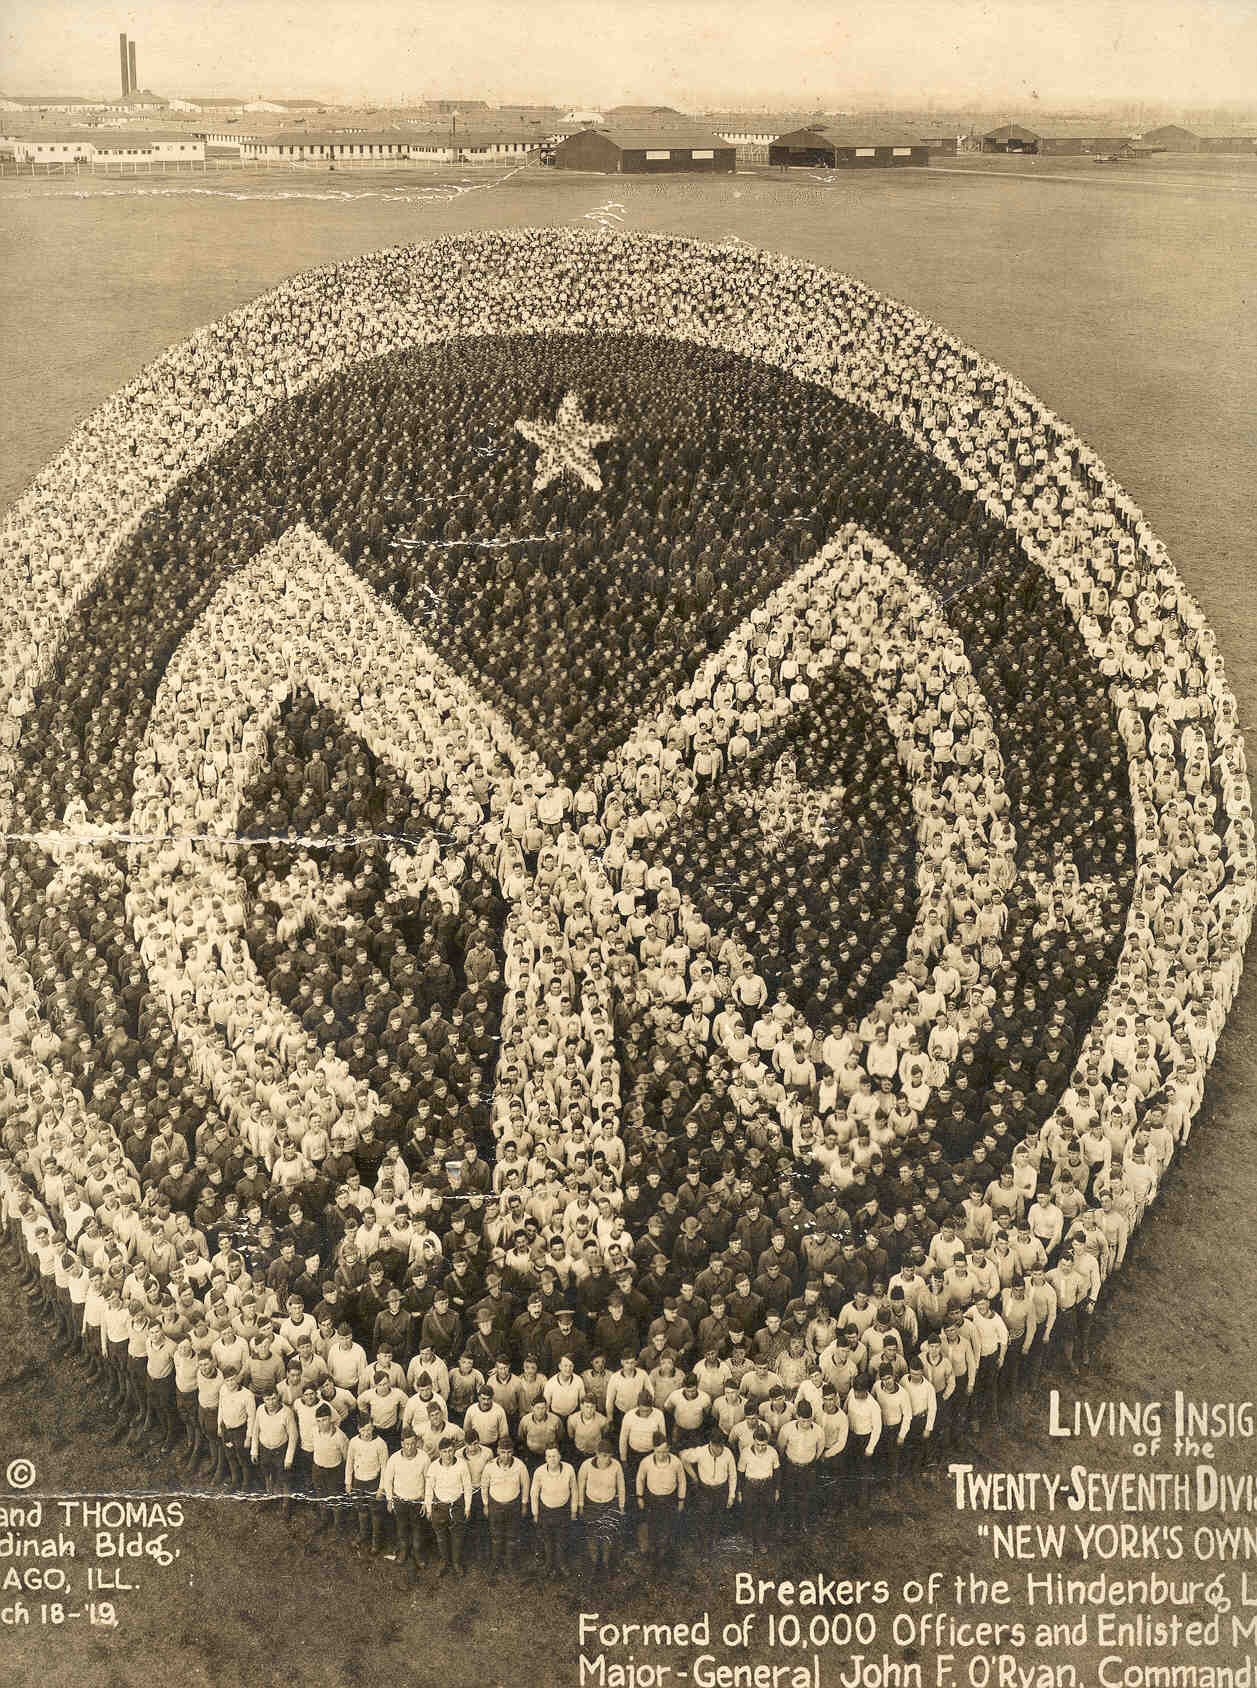 The Living Insignia of the 27th Division, a post war image formed by over 10,000 unit members. If image fails to appear click on this area